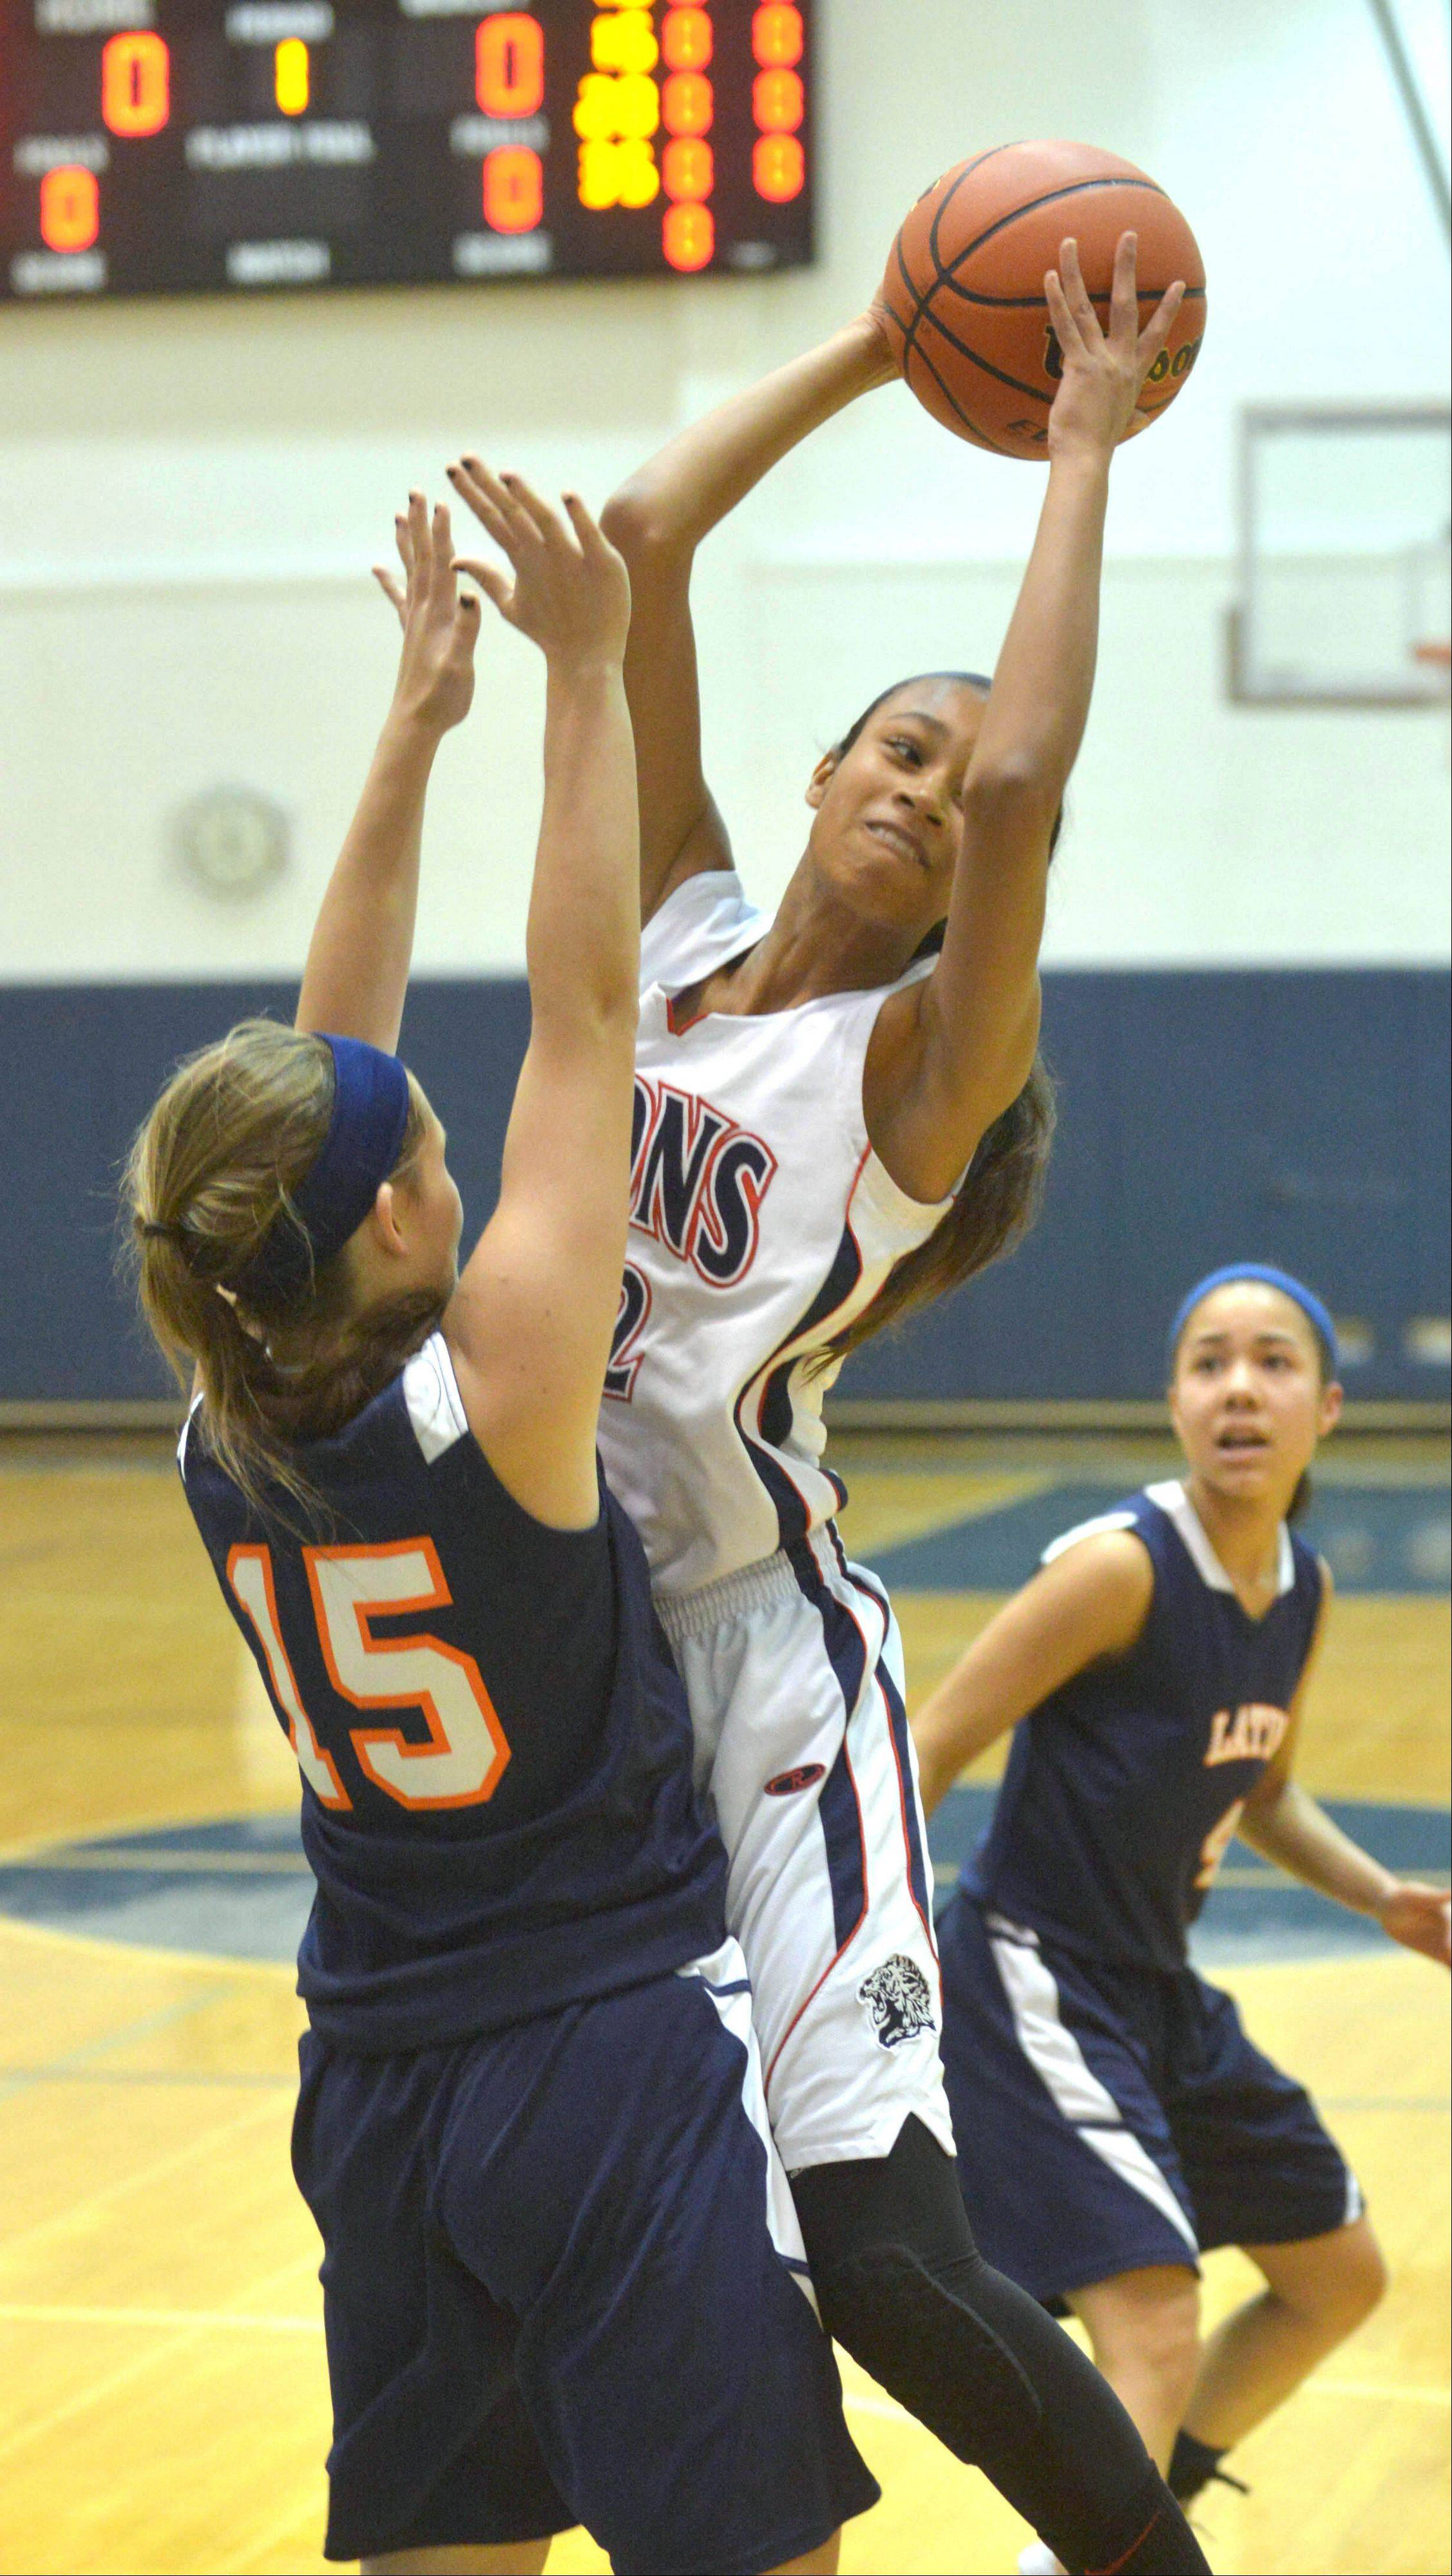 Lisle's Tyann Legrand-Melton takes a shot over Latin's Jen Costa during Thursday's basketball game.